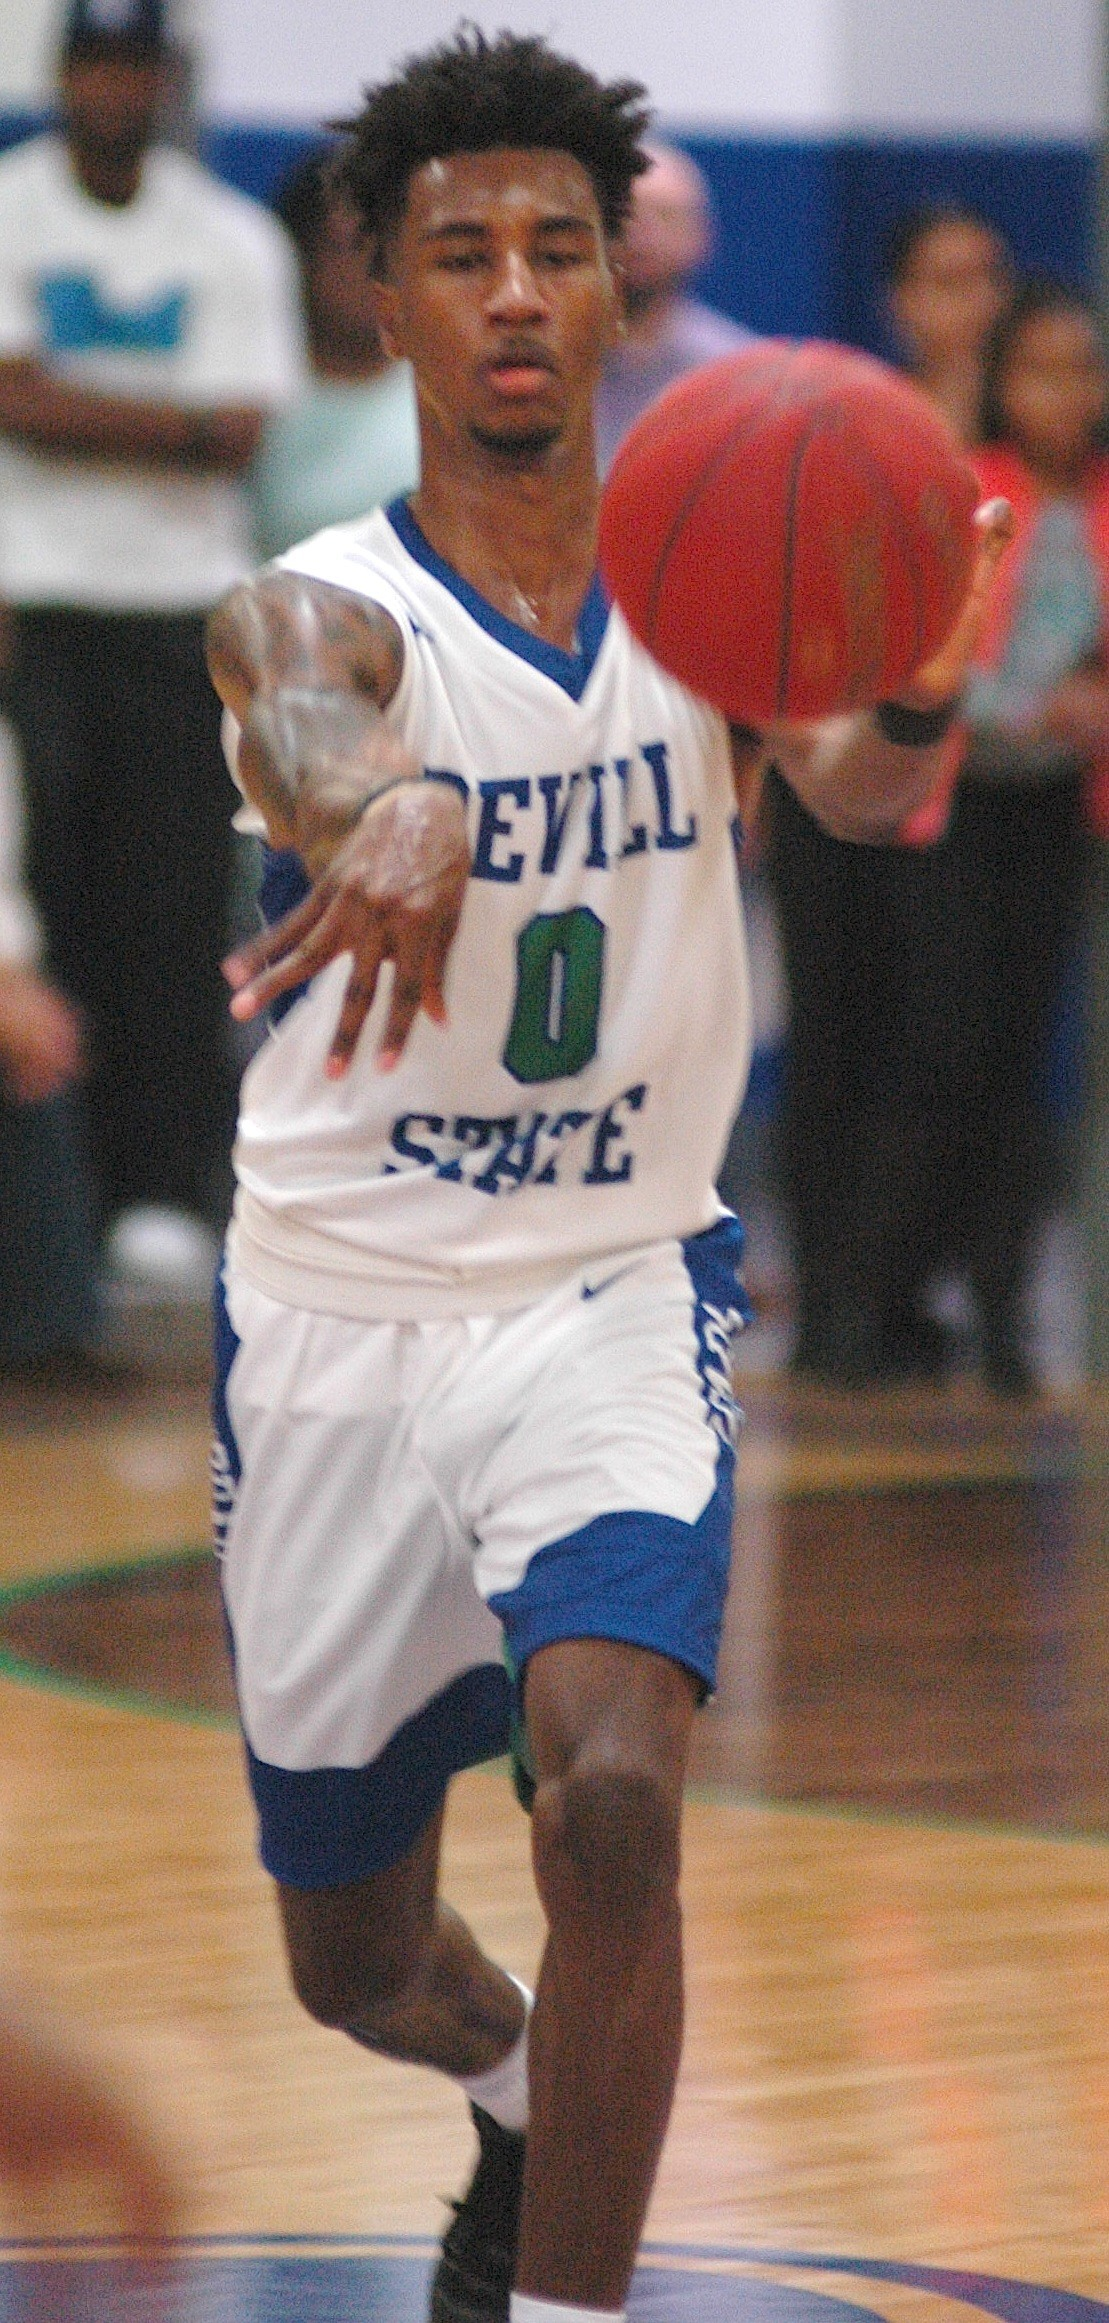 Bevill State's Earnest Medlock passes to a teammate during the Bears' season opener against Coastal Alabama South at Glen Clem Gymnasium on Thursday. The game was the first for Bevill State since the school shut down the program in 2011. Medlock had 19 points in the 85-74 loss.